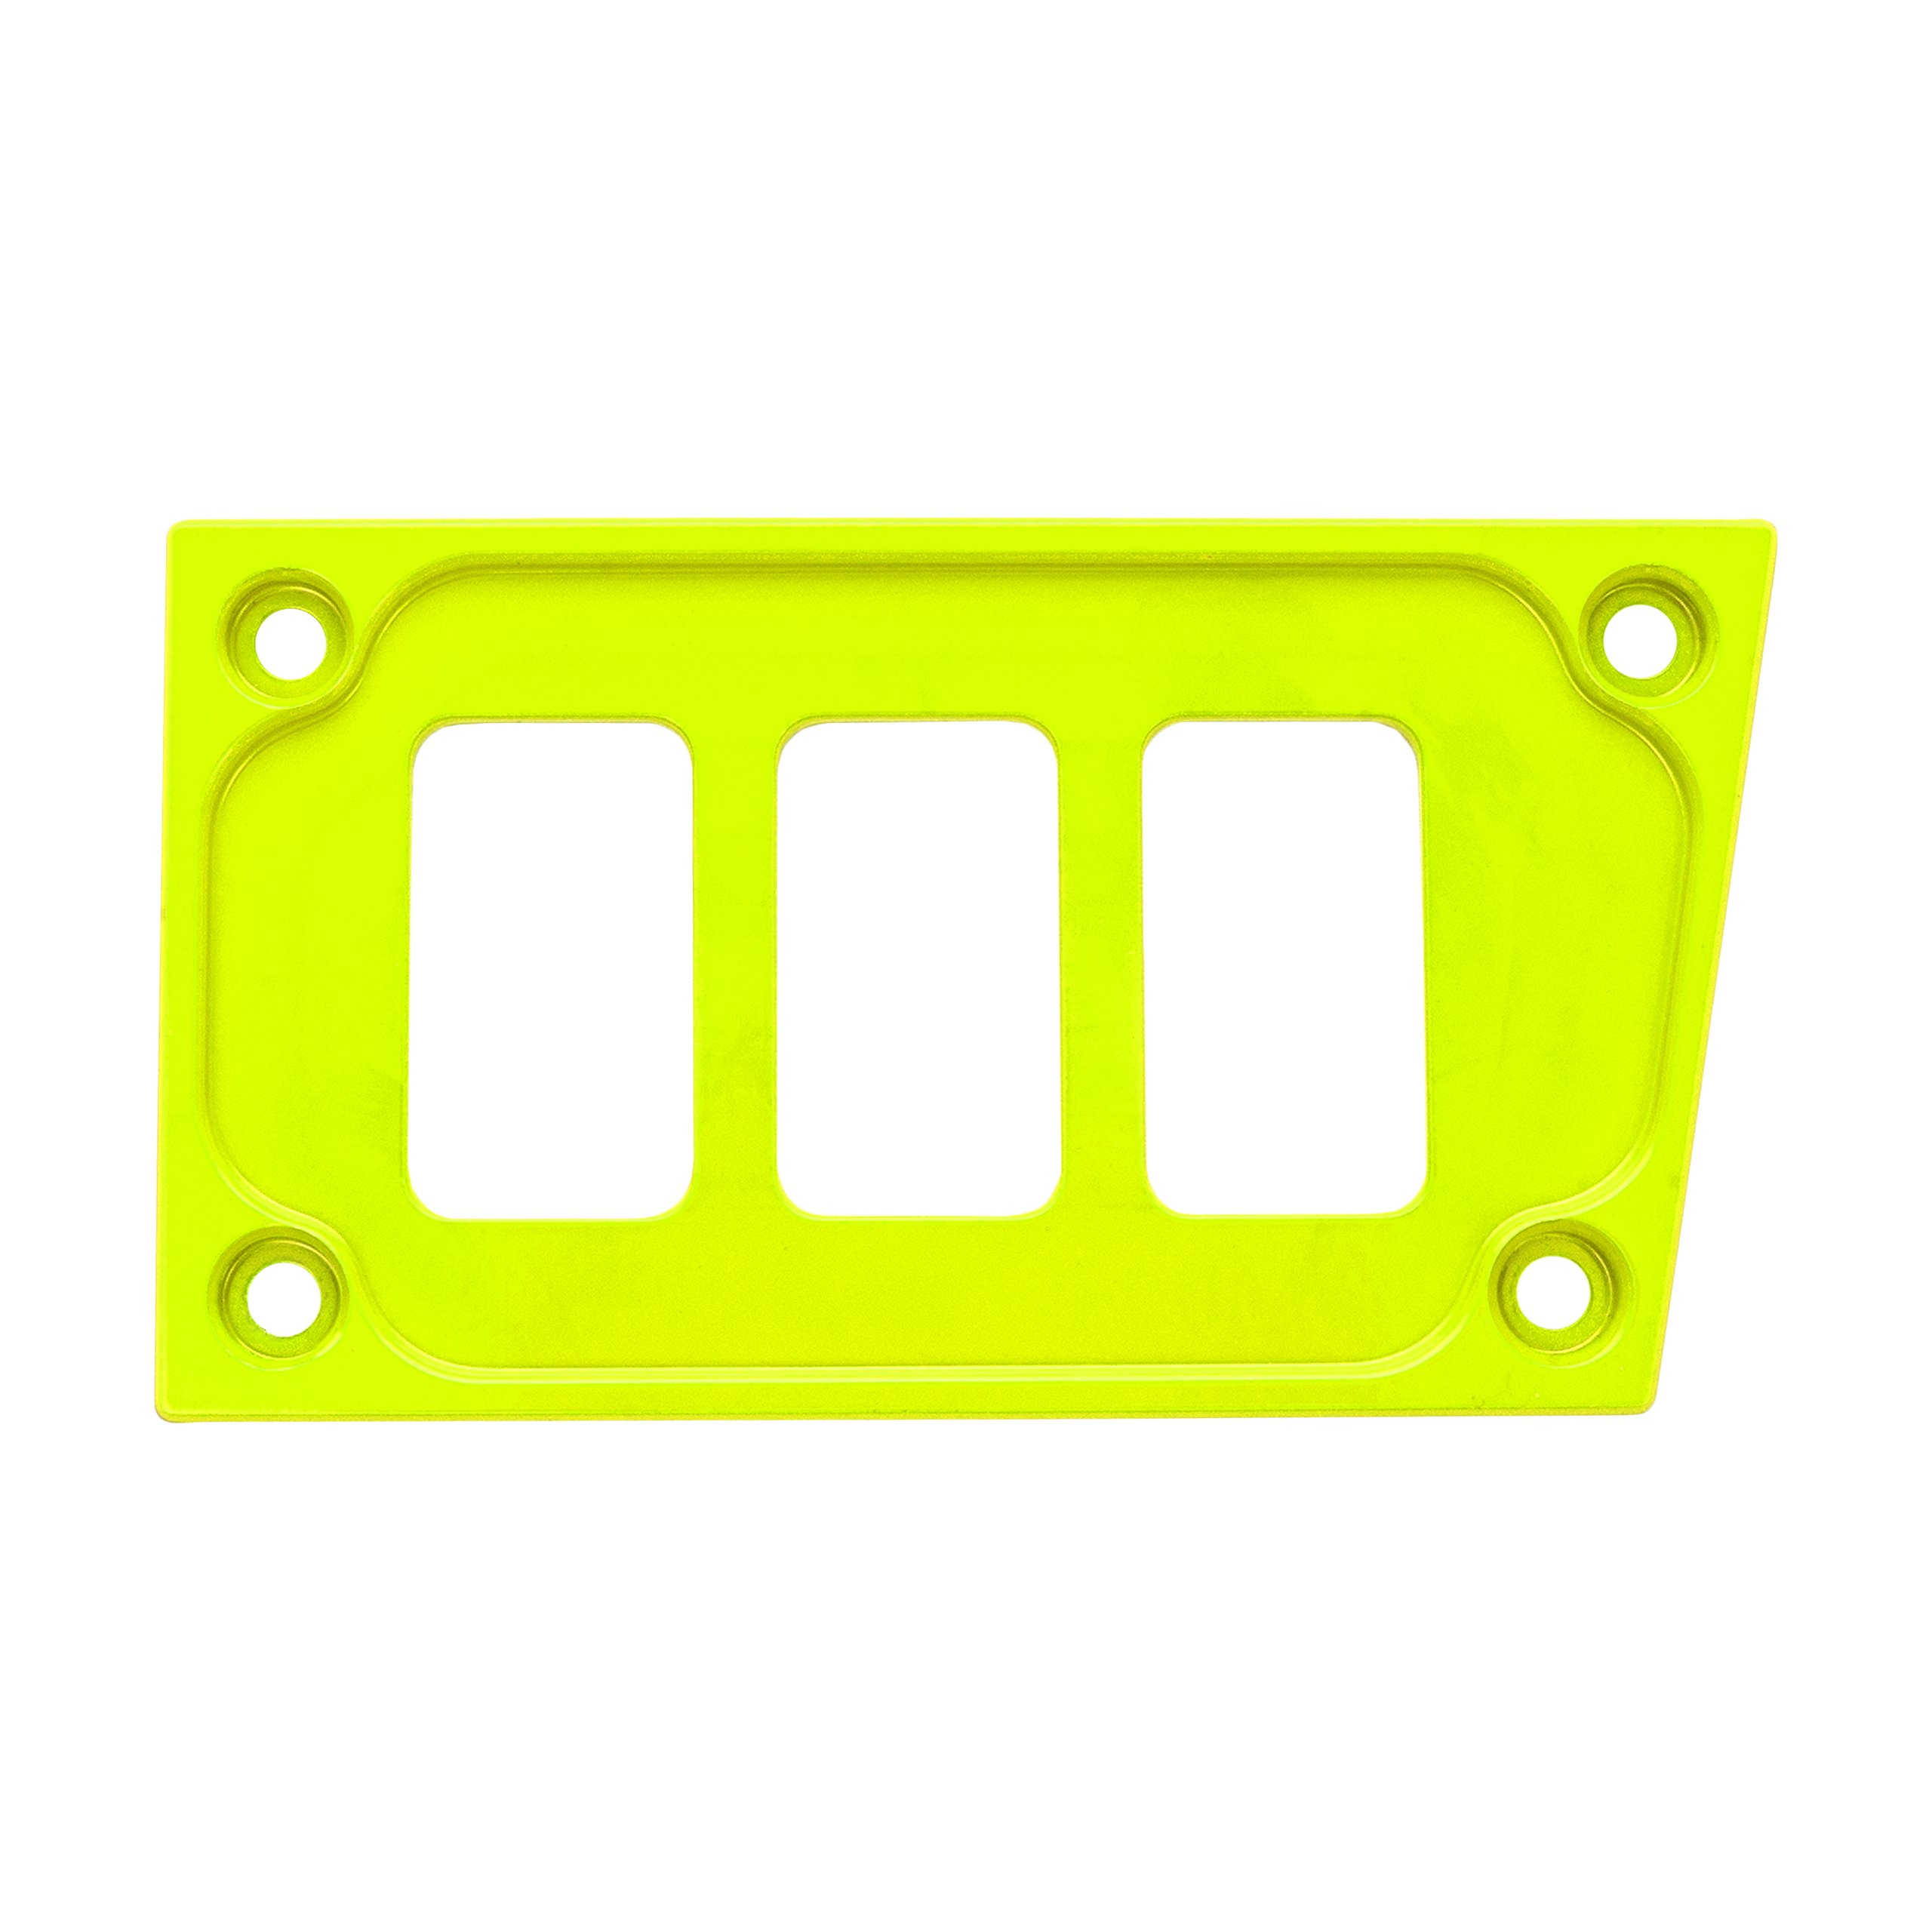 STV Motorsports Custom Aluminum Lower Left Dash Panel for Polaris RZR XP 1000 with 3 Switch Openings (no switches included) (Lime)